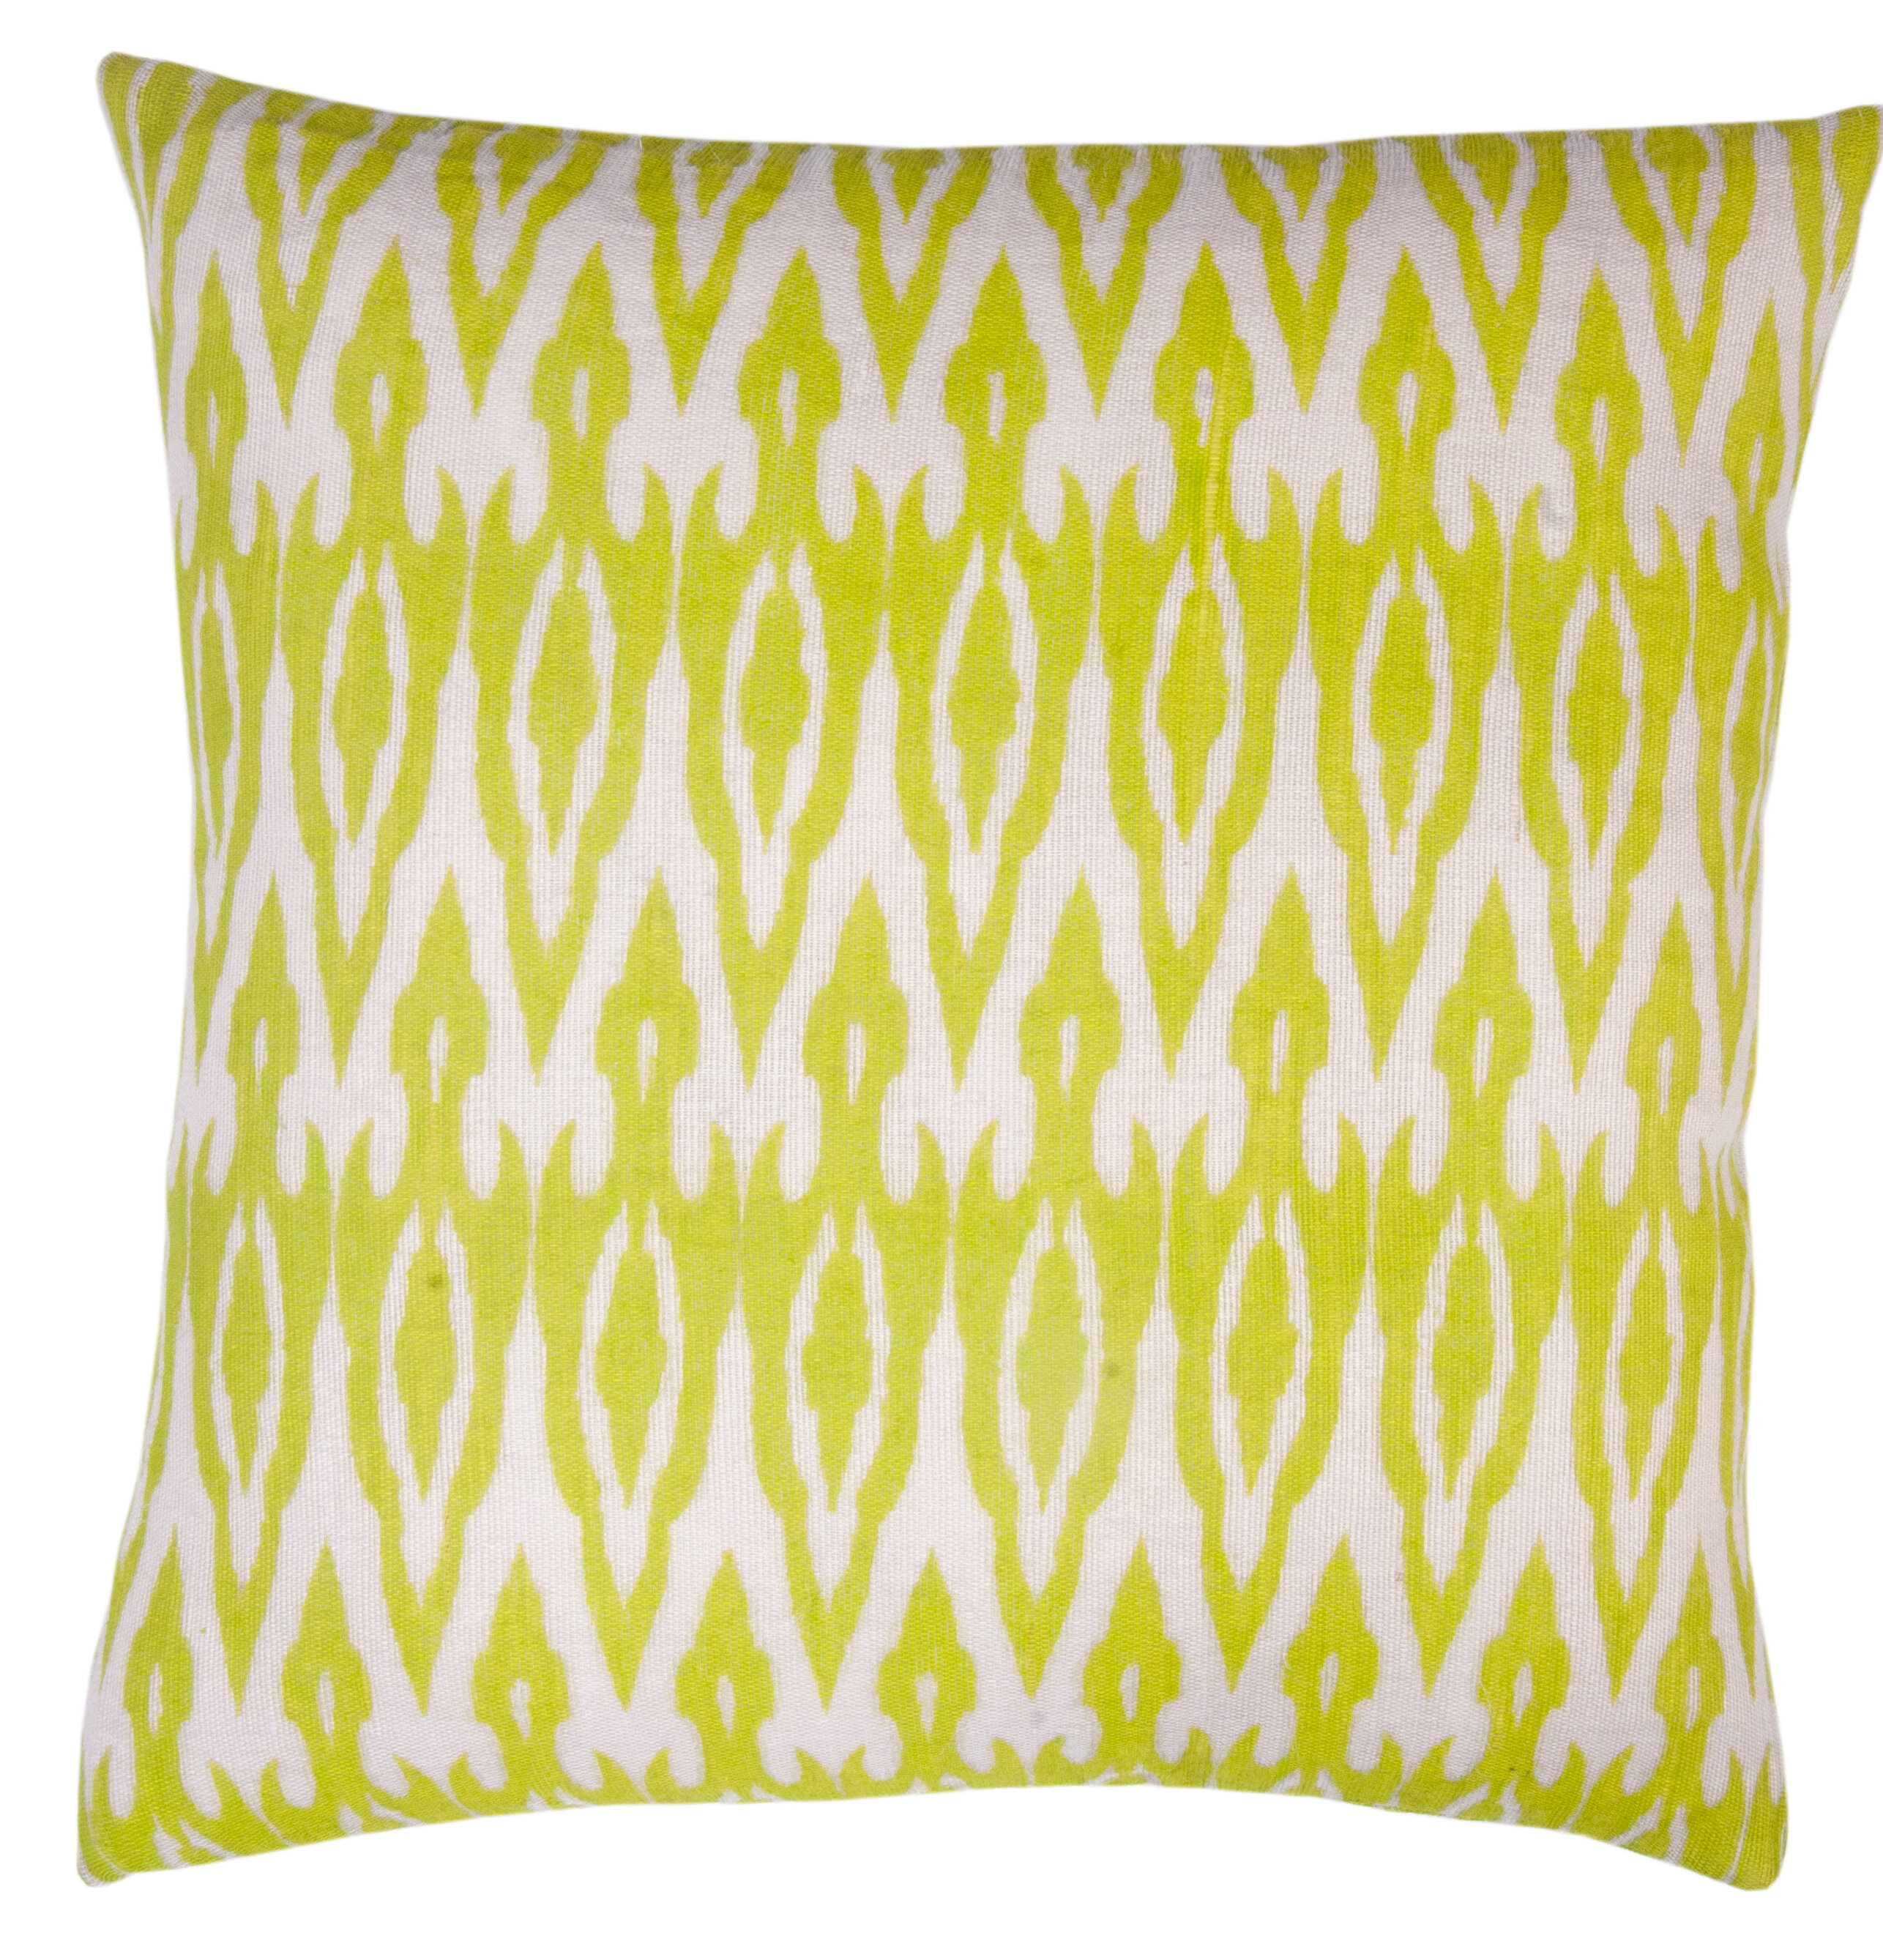 Ikat Winston Porter Throw Pillows You Ll Love In 2021 Wayfair